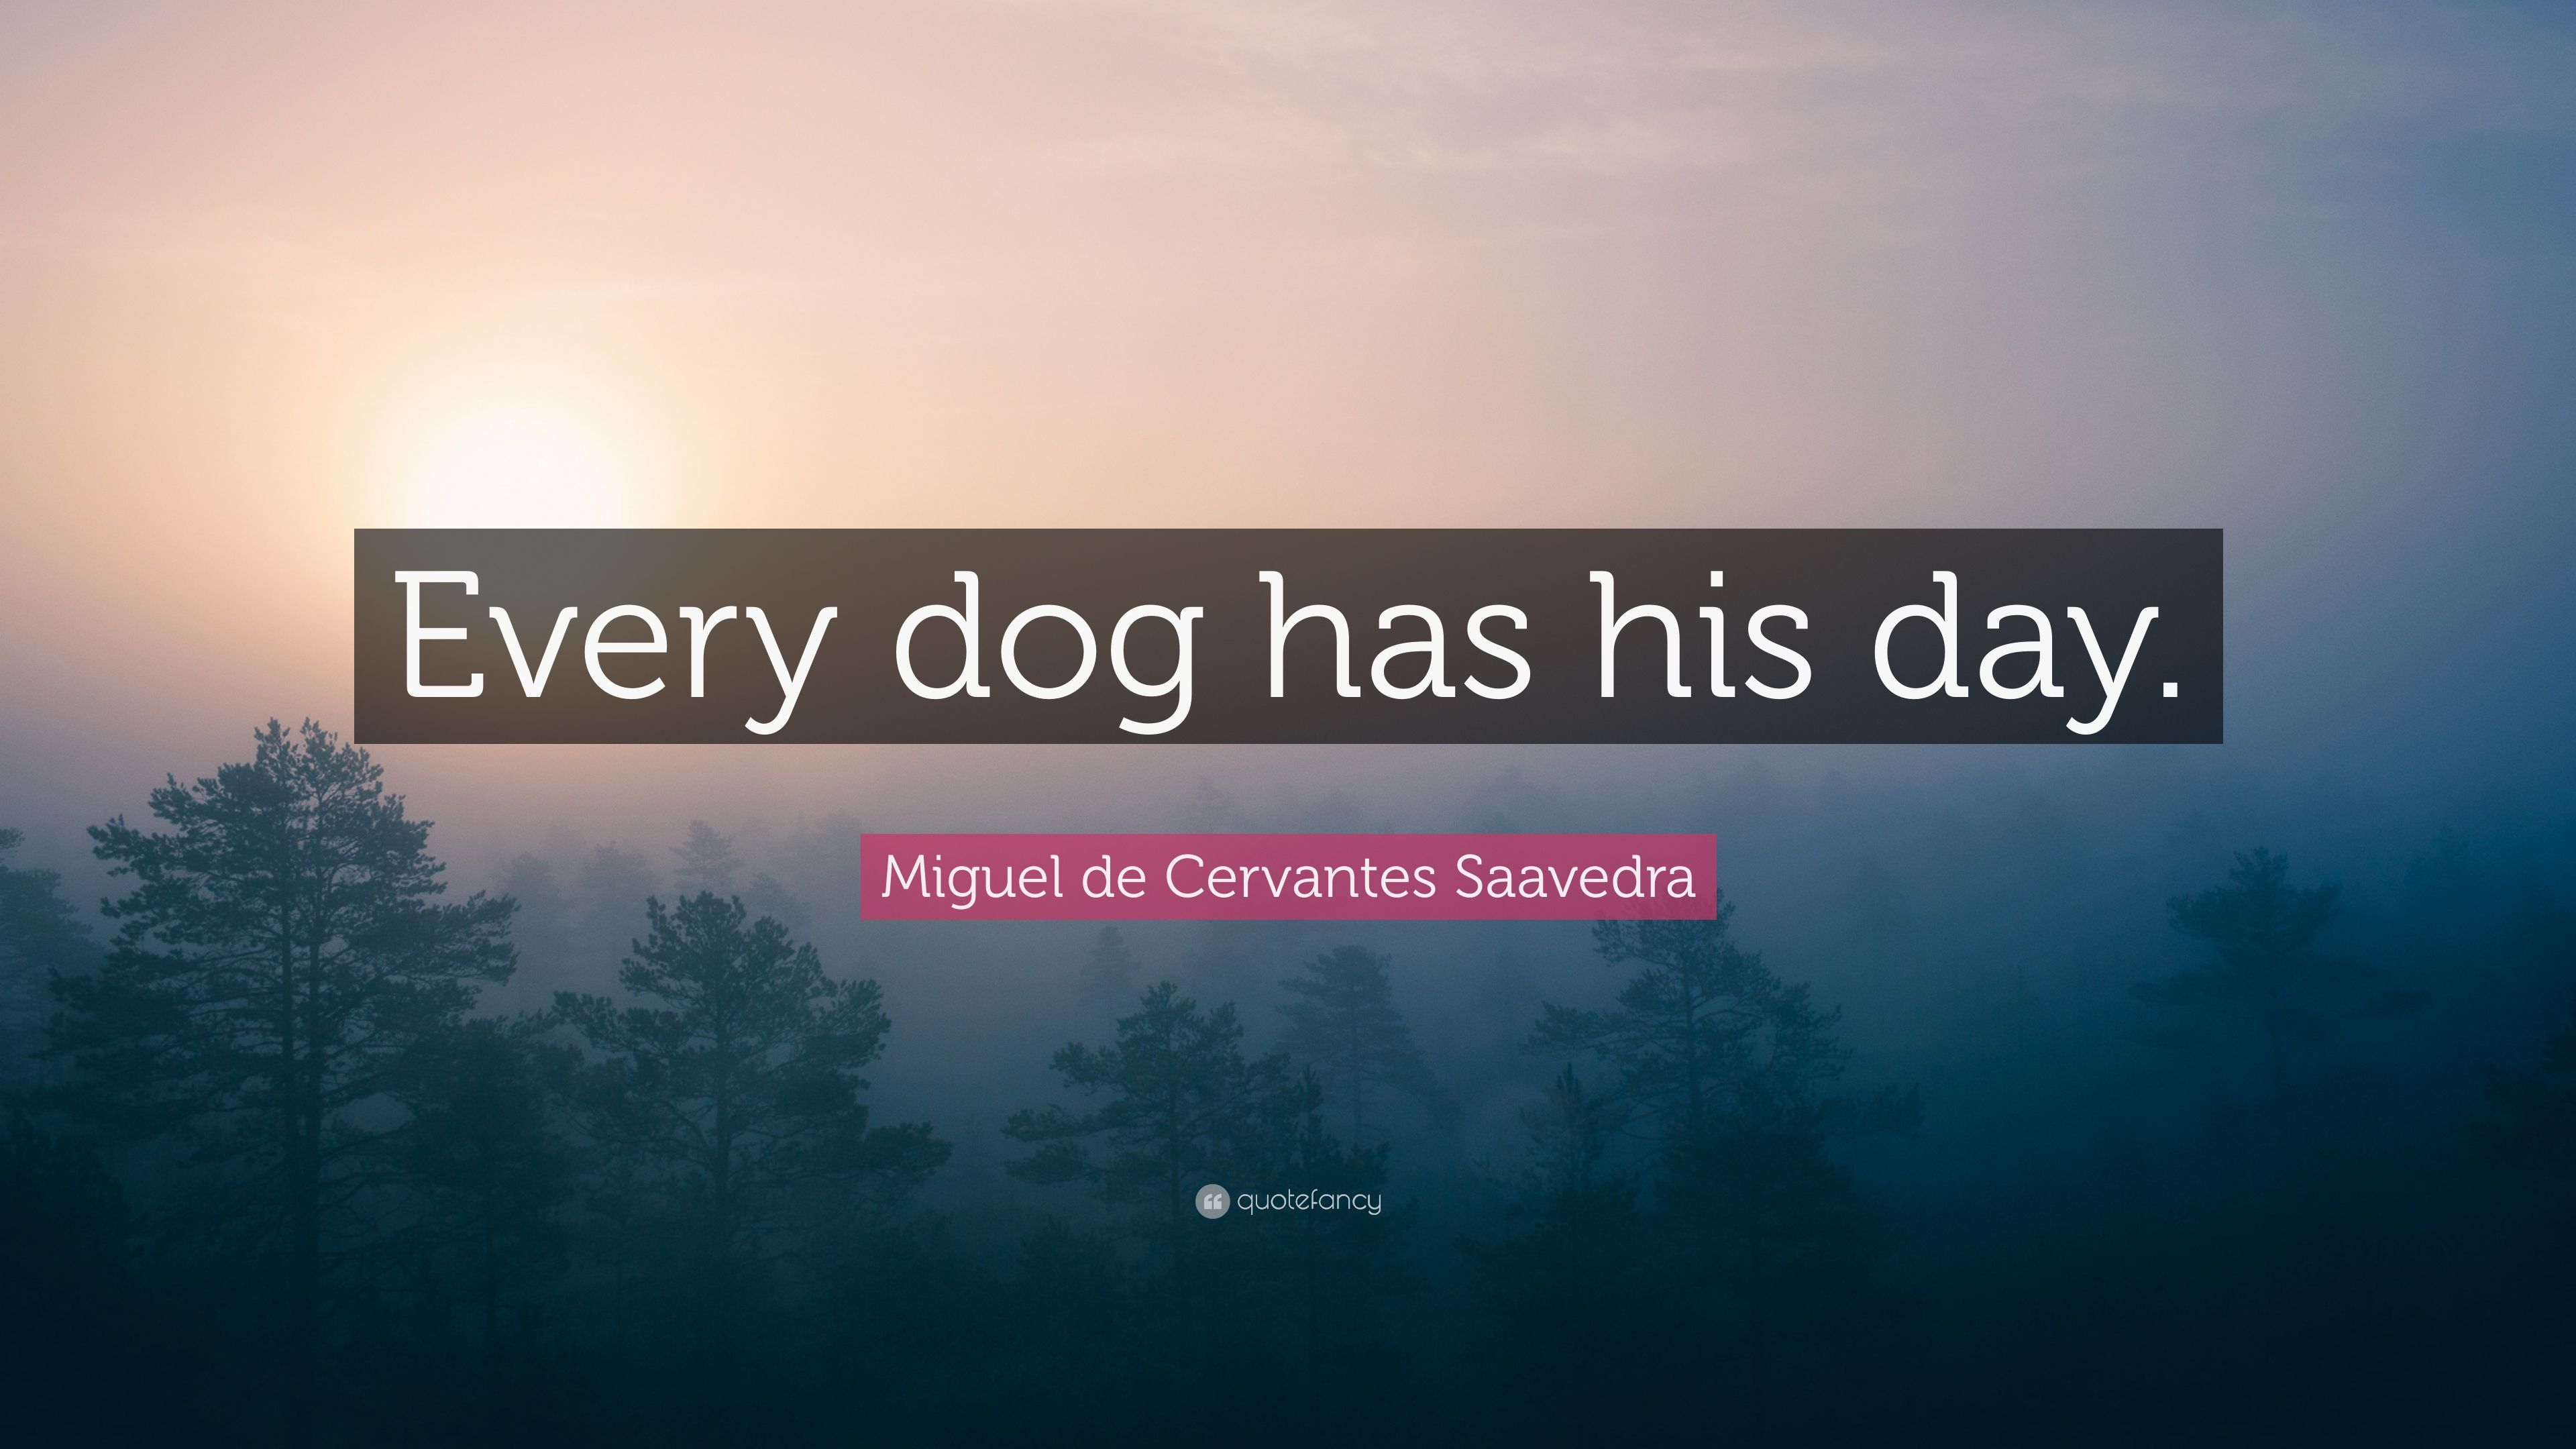 Miguel De Cervantes Saavedra Quote Every Dog Has His Day 9